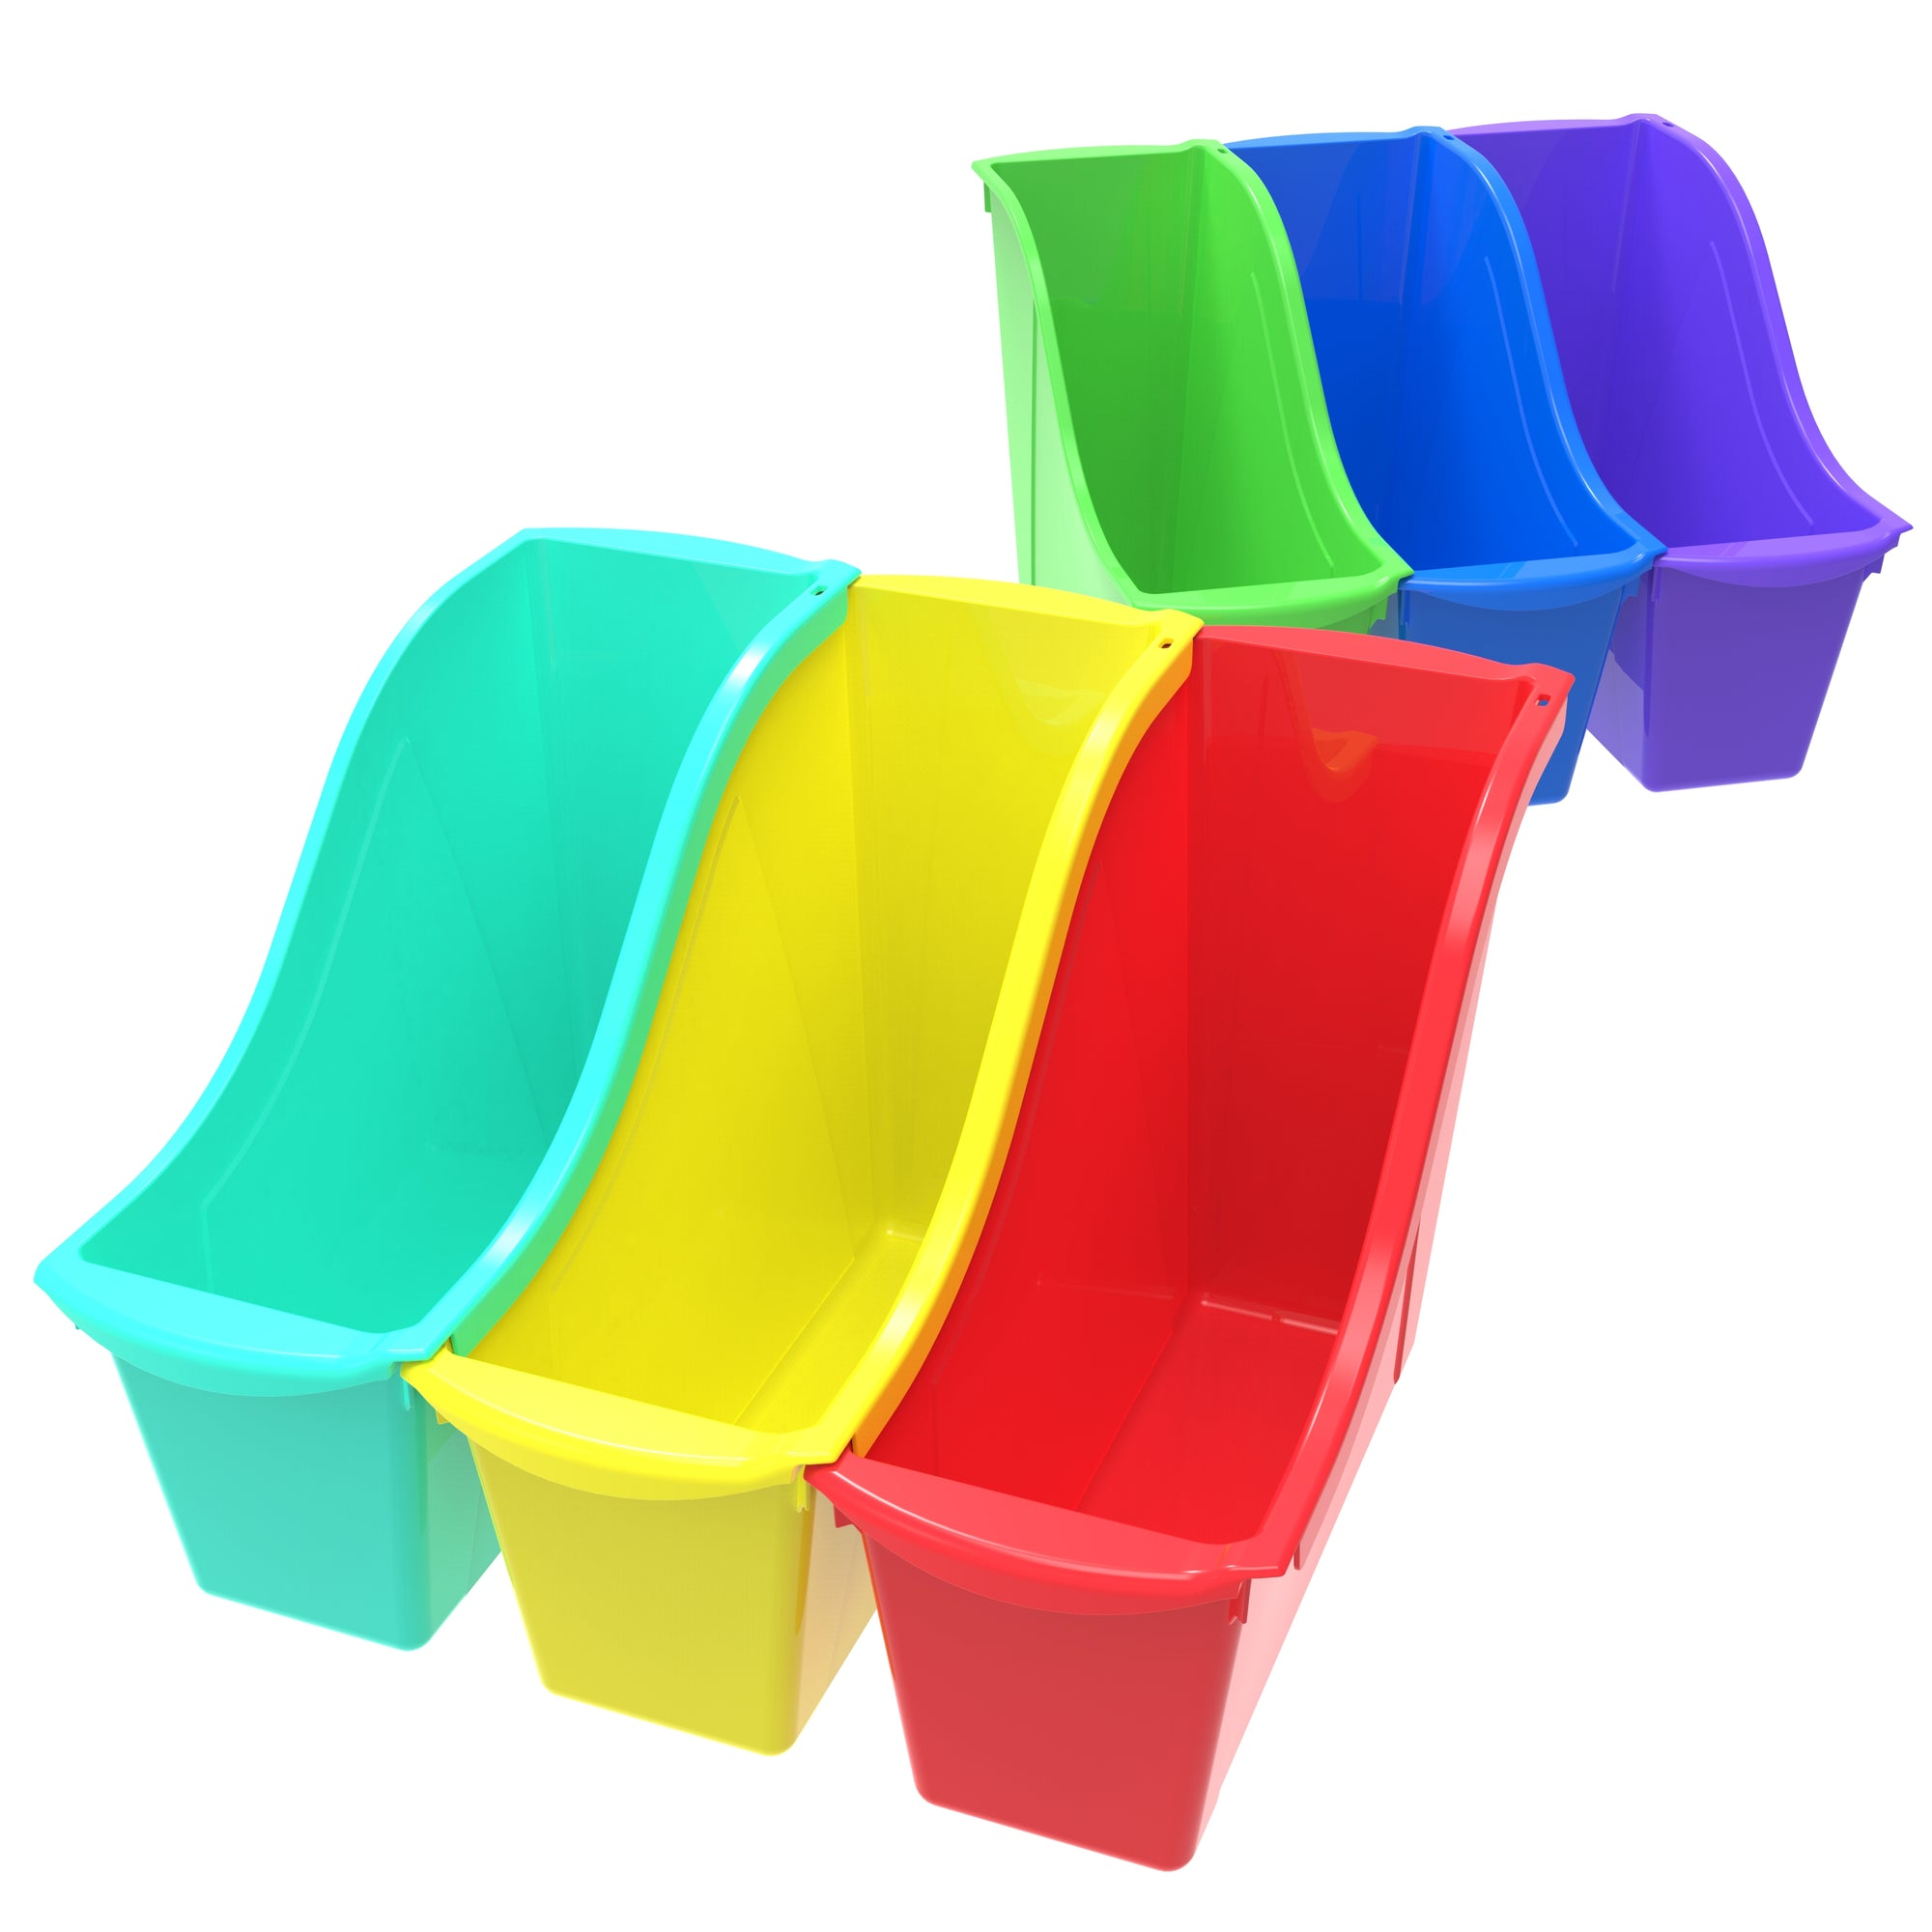 Small Book Bin, Assorted Colors, (6 units/pack)